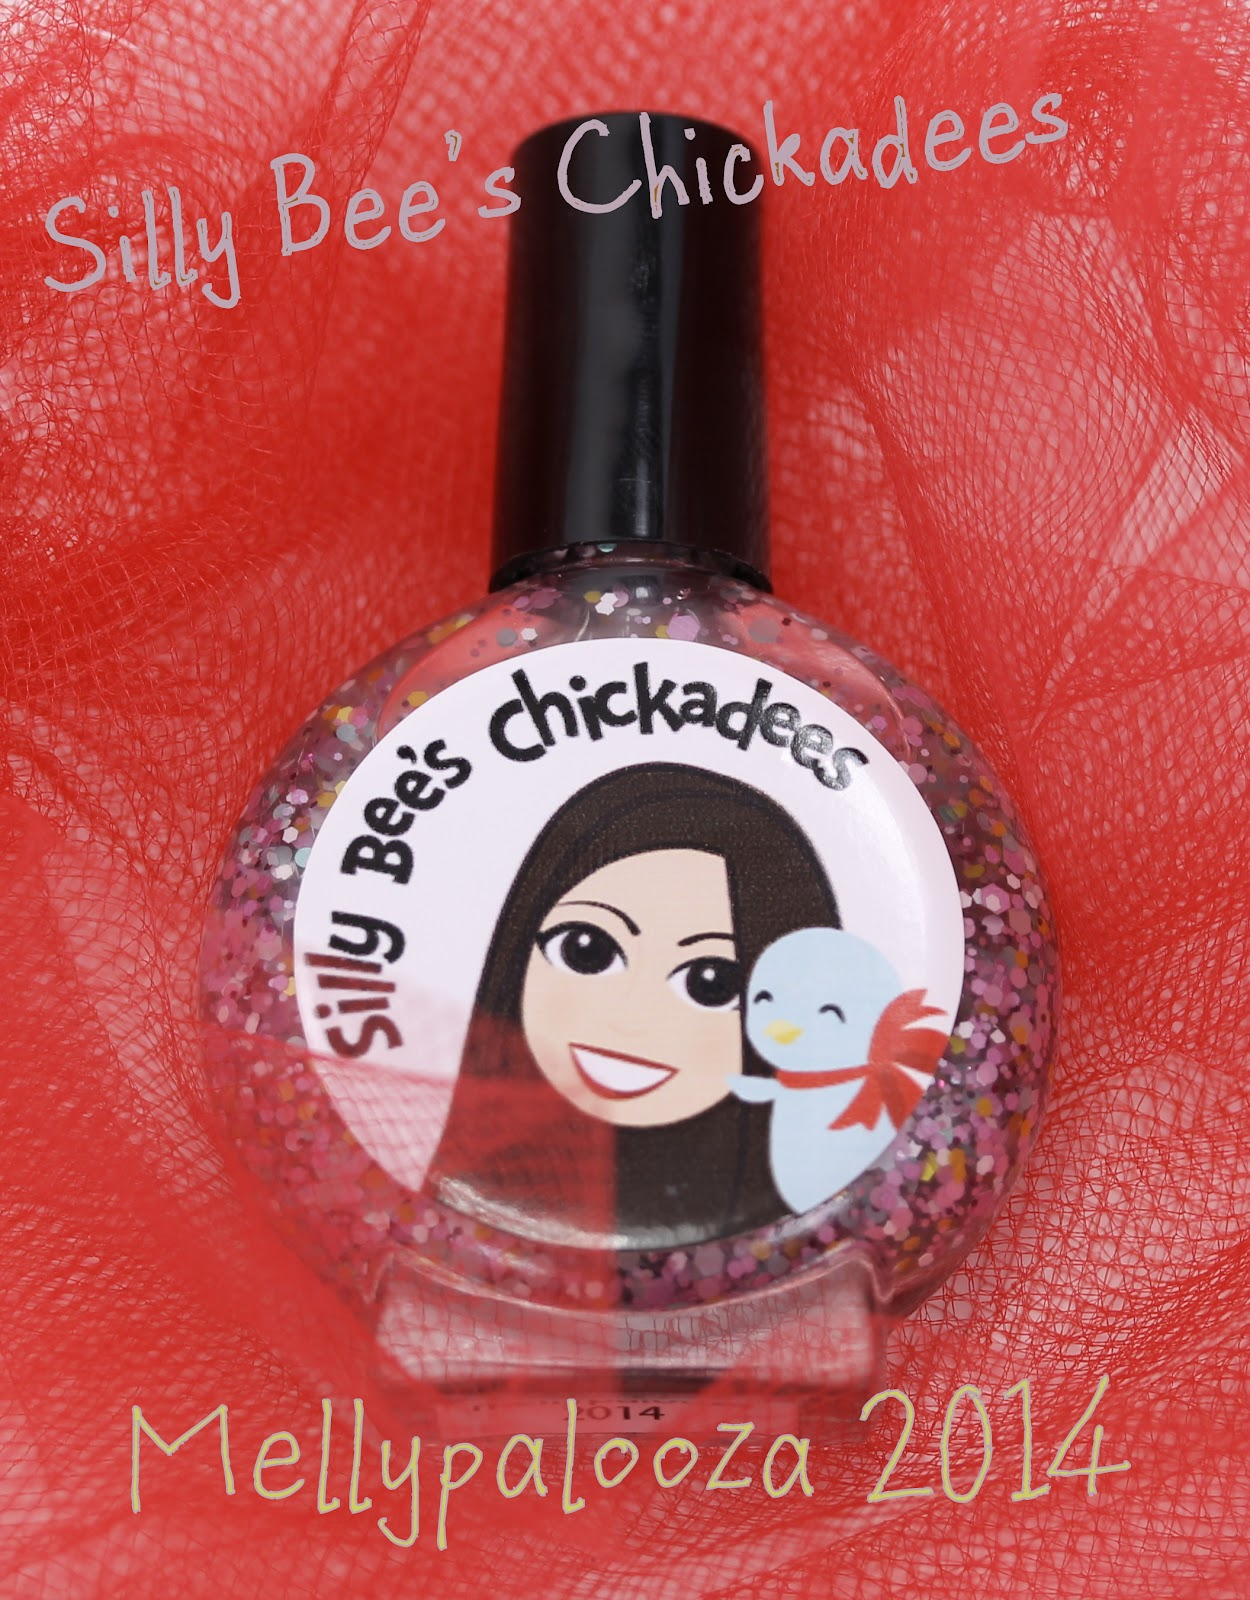 Silly Bee's Chickadees Mellypalooza 2014